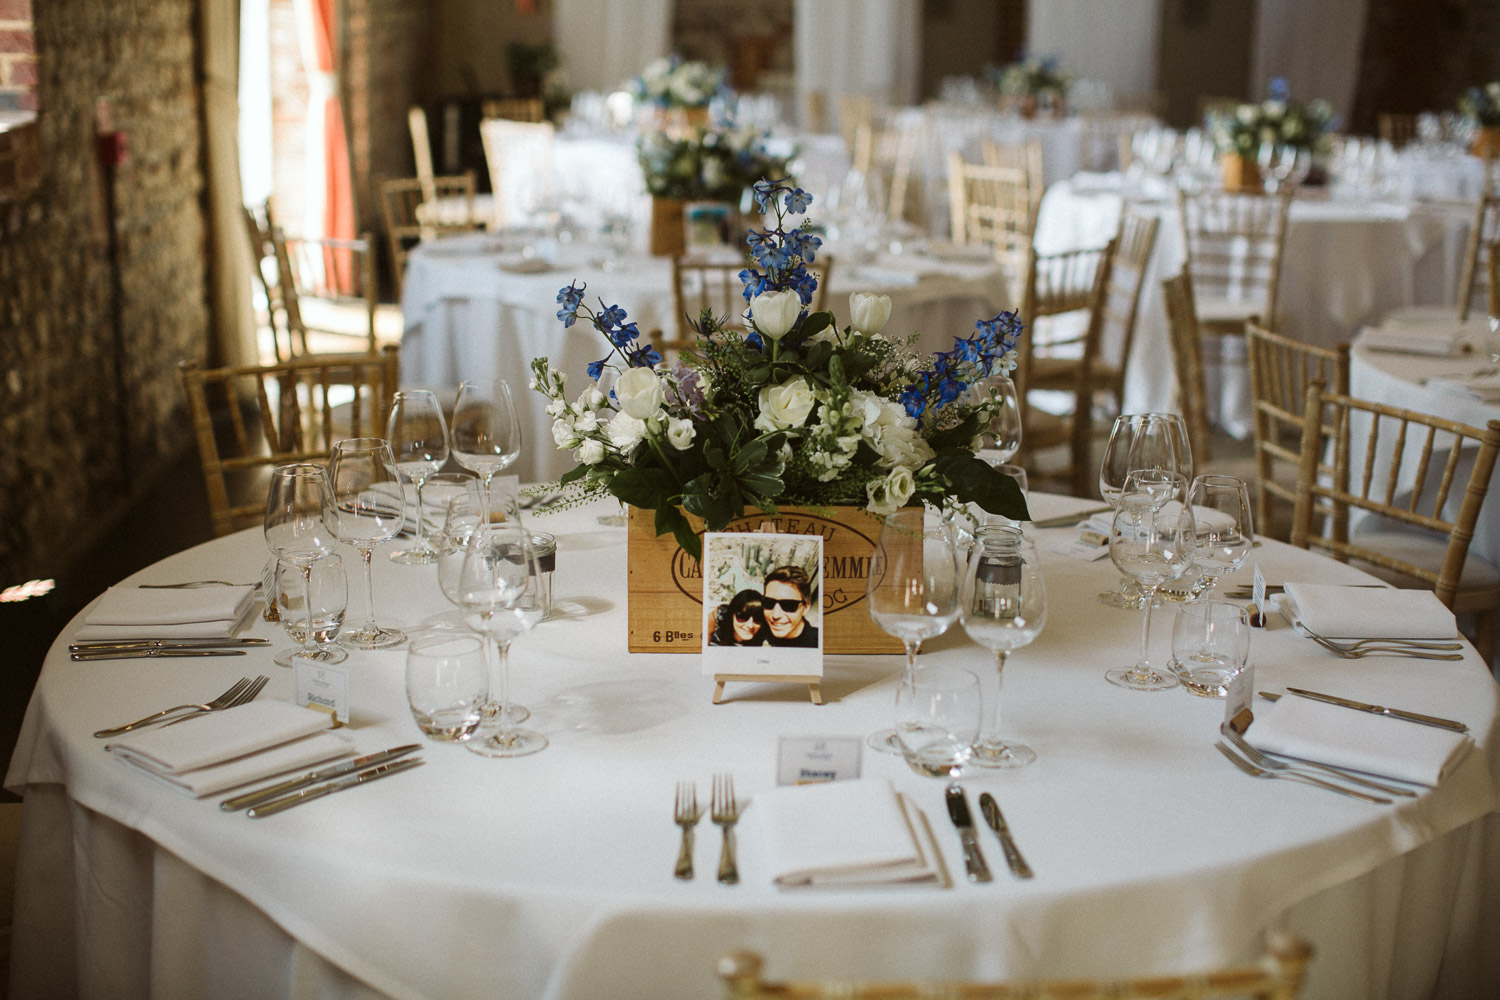 tables decorated with travel photos